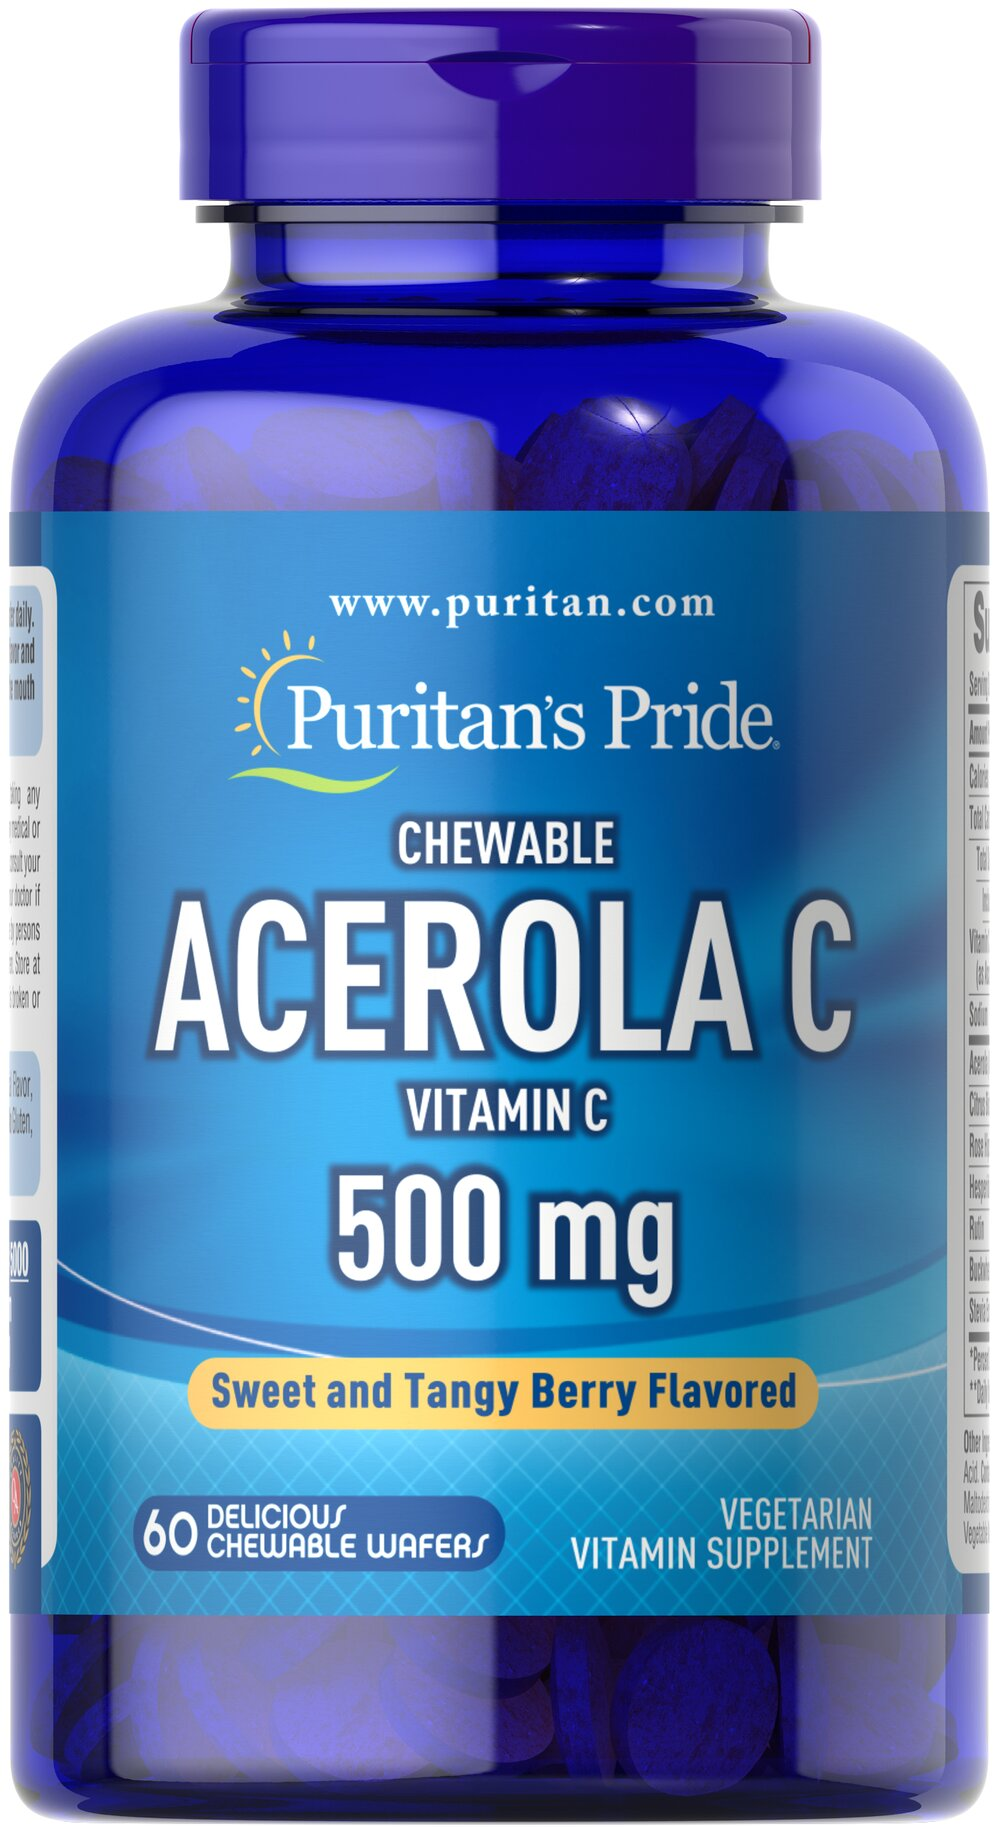 Chewable Acerola C 500 mg <p>Vitamin C is essential to many functions in the body and is one of the leading vitamins for immune support.**</p><p>Offers superior antioxidant support.**</p><p>Supports healthy immune function and promotes well-being.**</p><p>Forms the molecular basis for healthy skin, hair and nails.**</p> 60 Chewables 500 mg $9.79